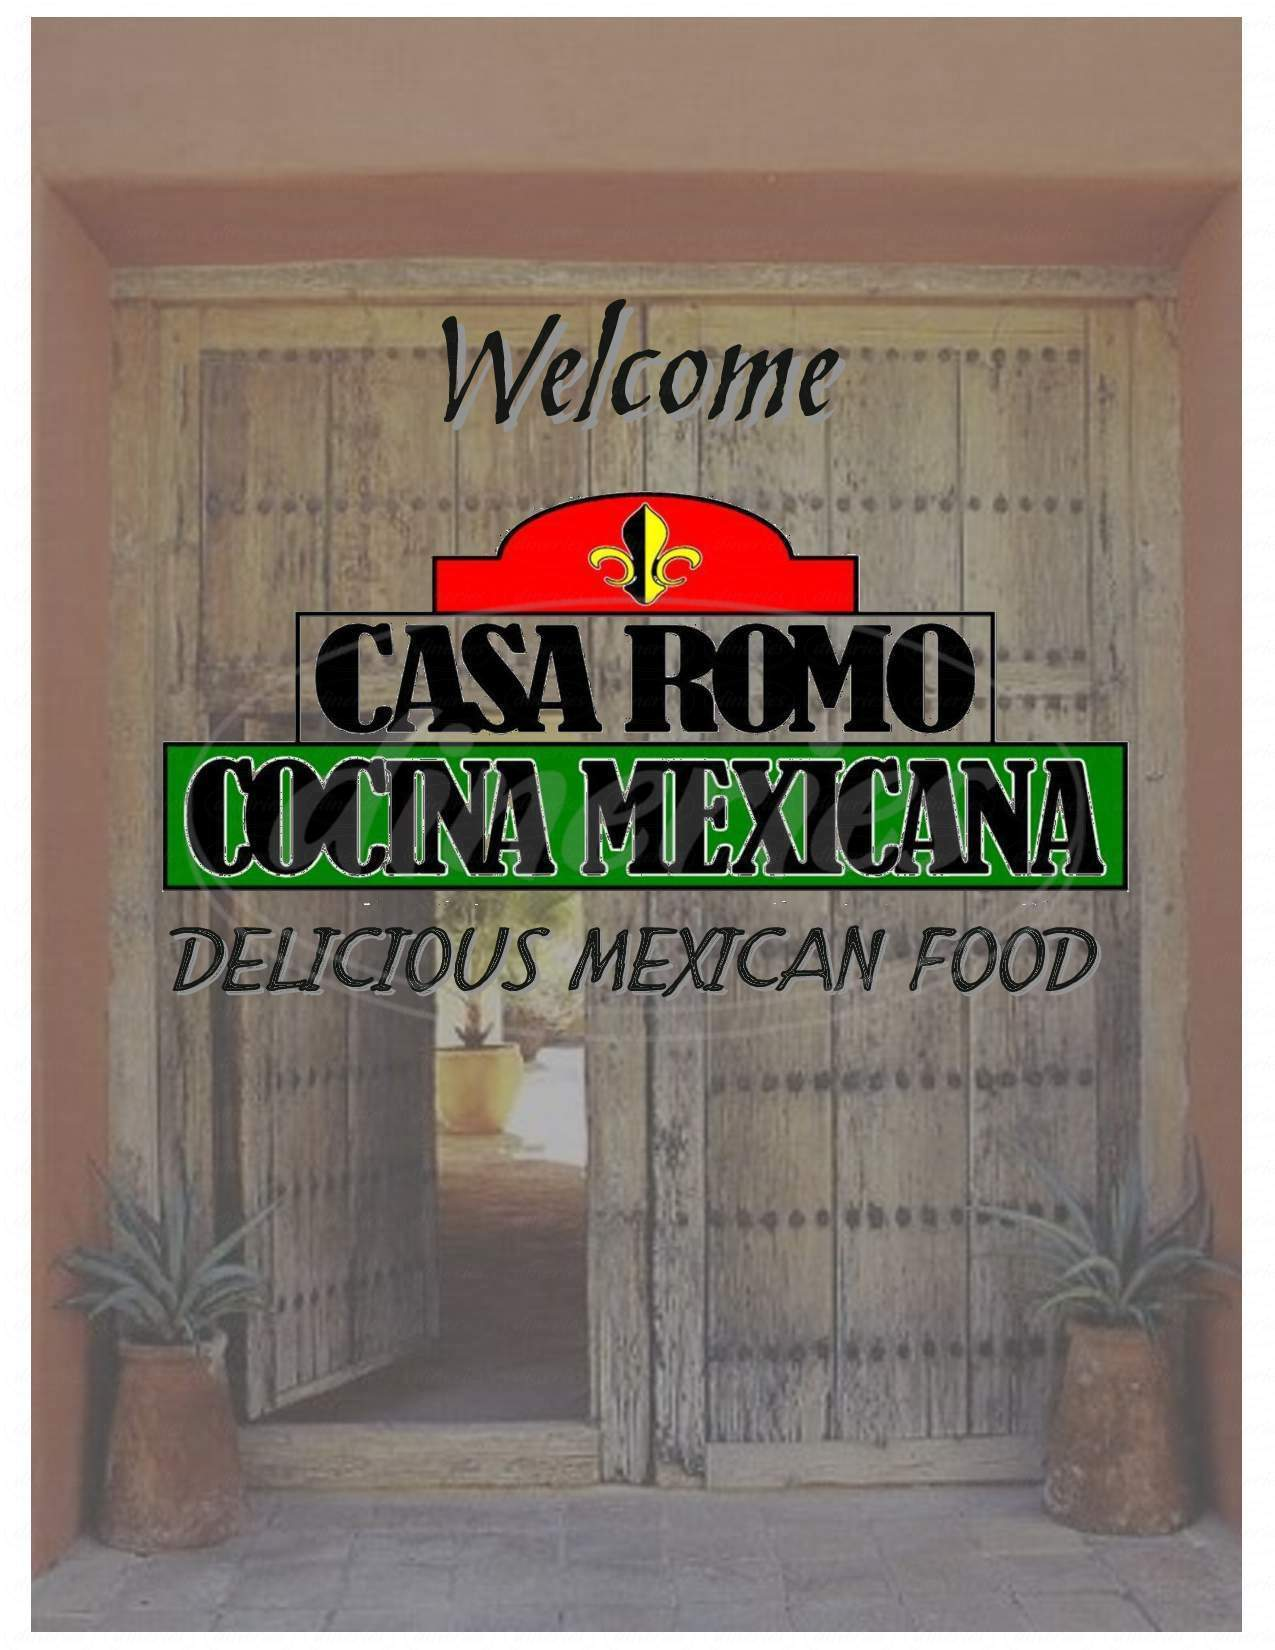 menu for Casa Romo